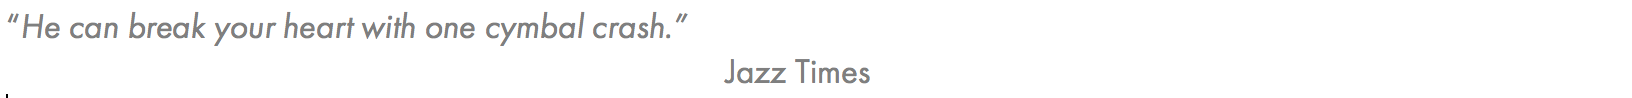 previte-jazztimes-quote-grey-website.png